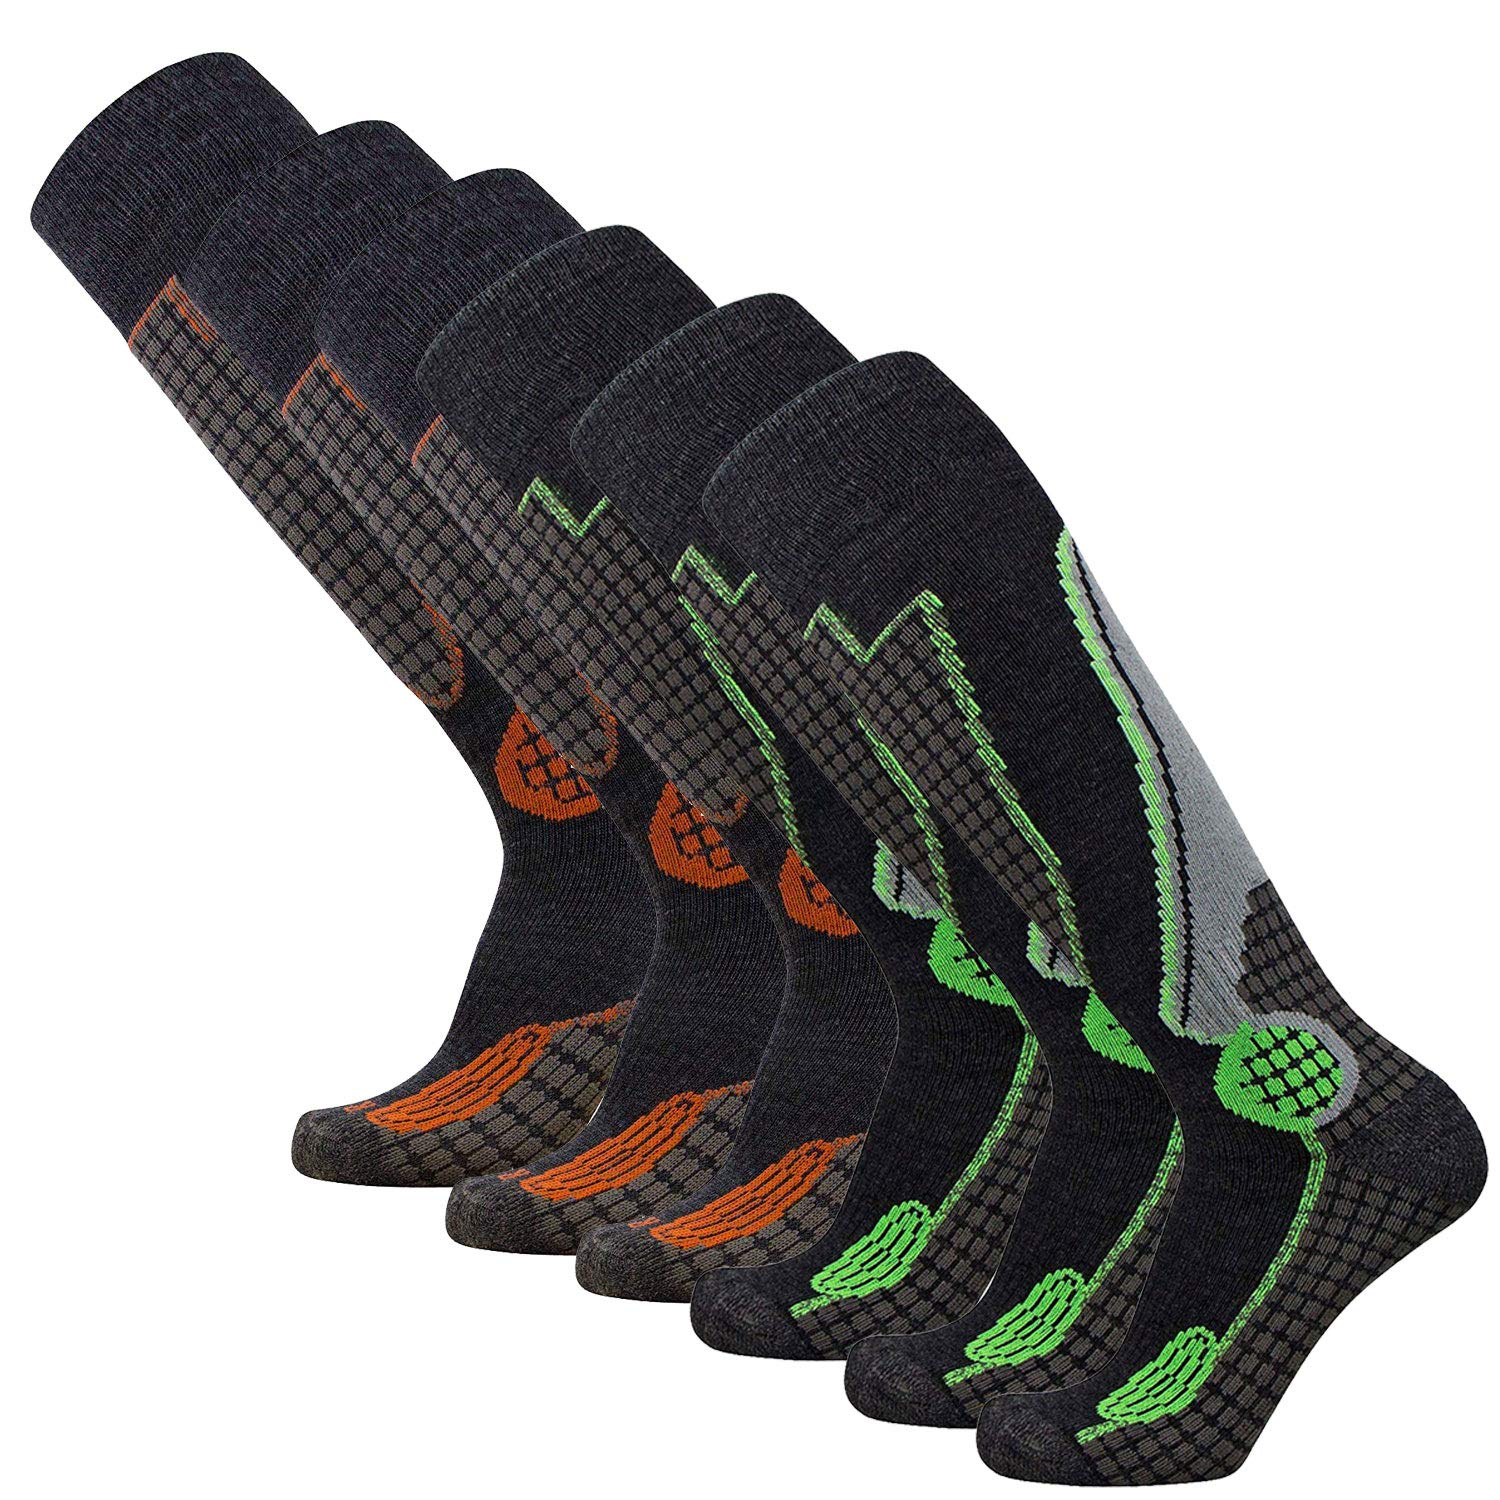 Black orange (3) + Black Neon Green (3)  6 Pack Pure Athlete High Performance Wool Ski Socks  Outdoor Wool Skiing Socks, Snowboard Socks